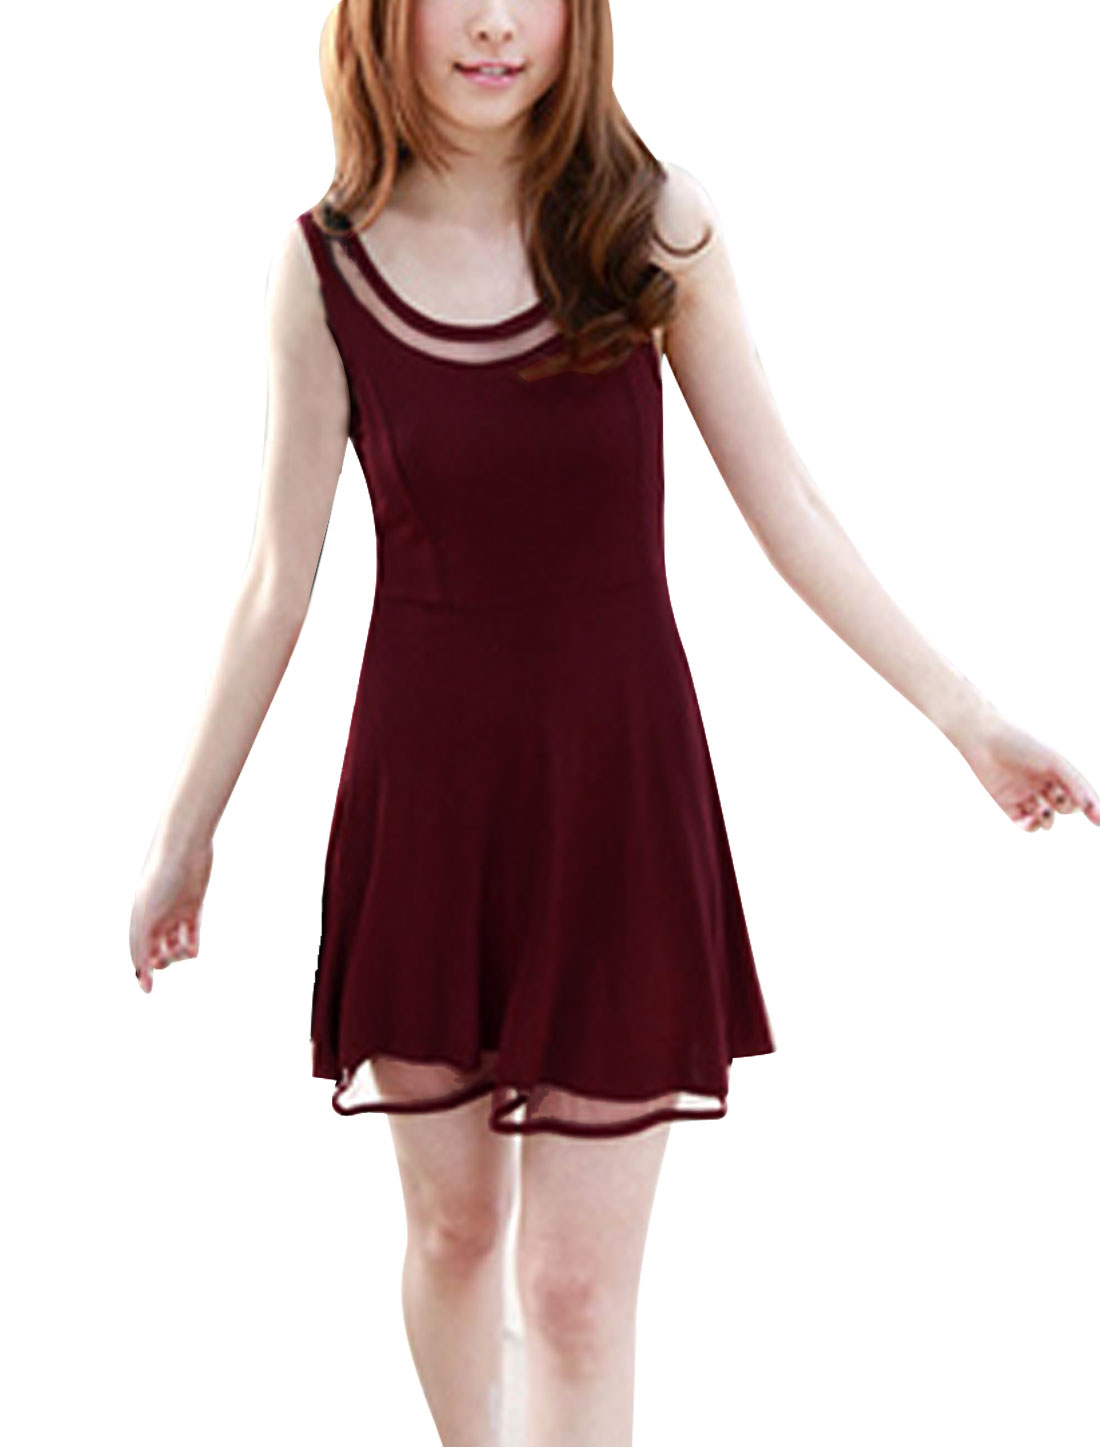 Women Spliced Mesh Semi Sheer Sleeveless Chic Casual Dress Burgundy XS